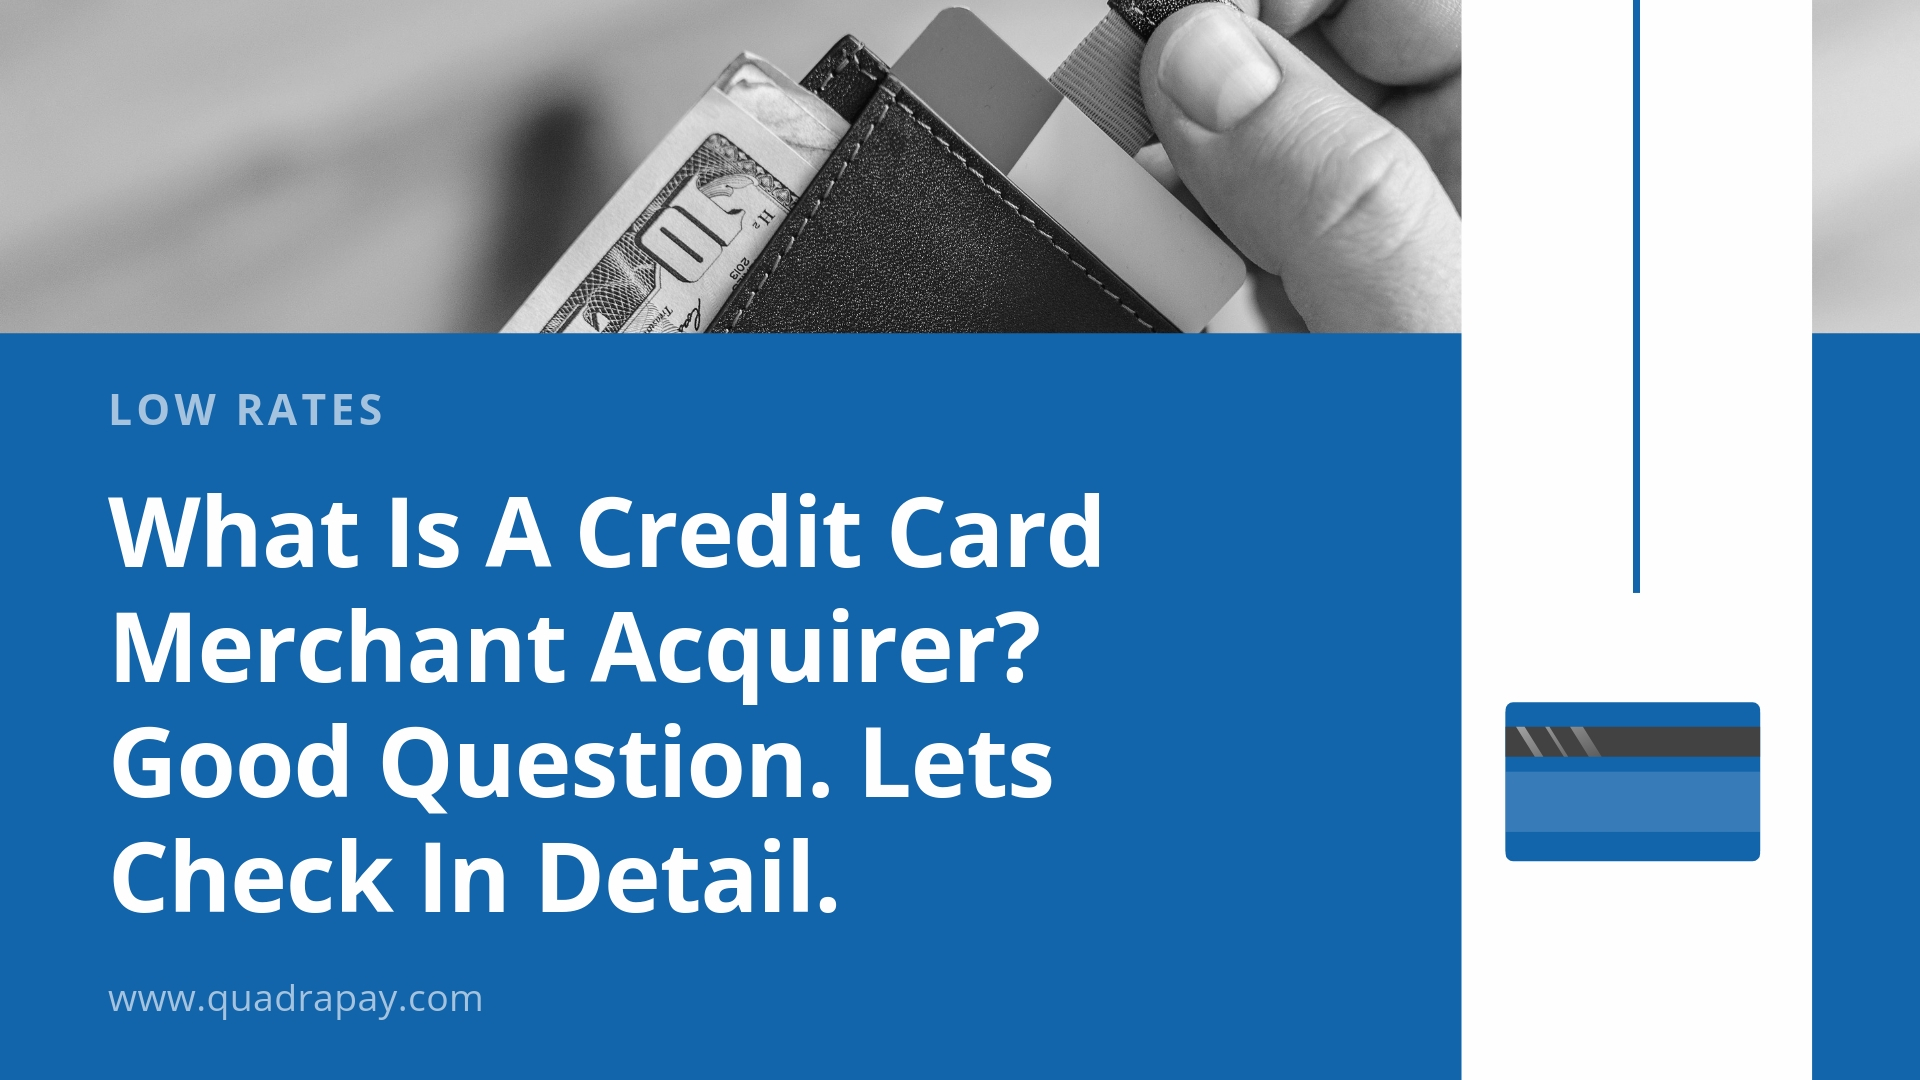 Credit Card Merchant Acquirer BY Quadrapay